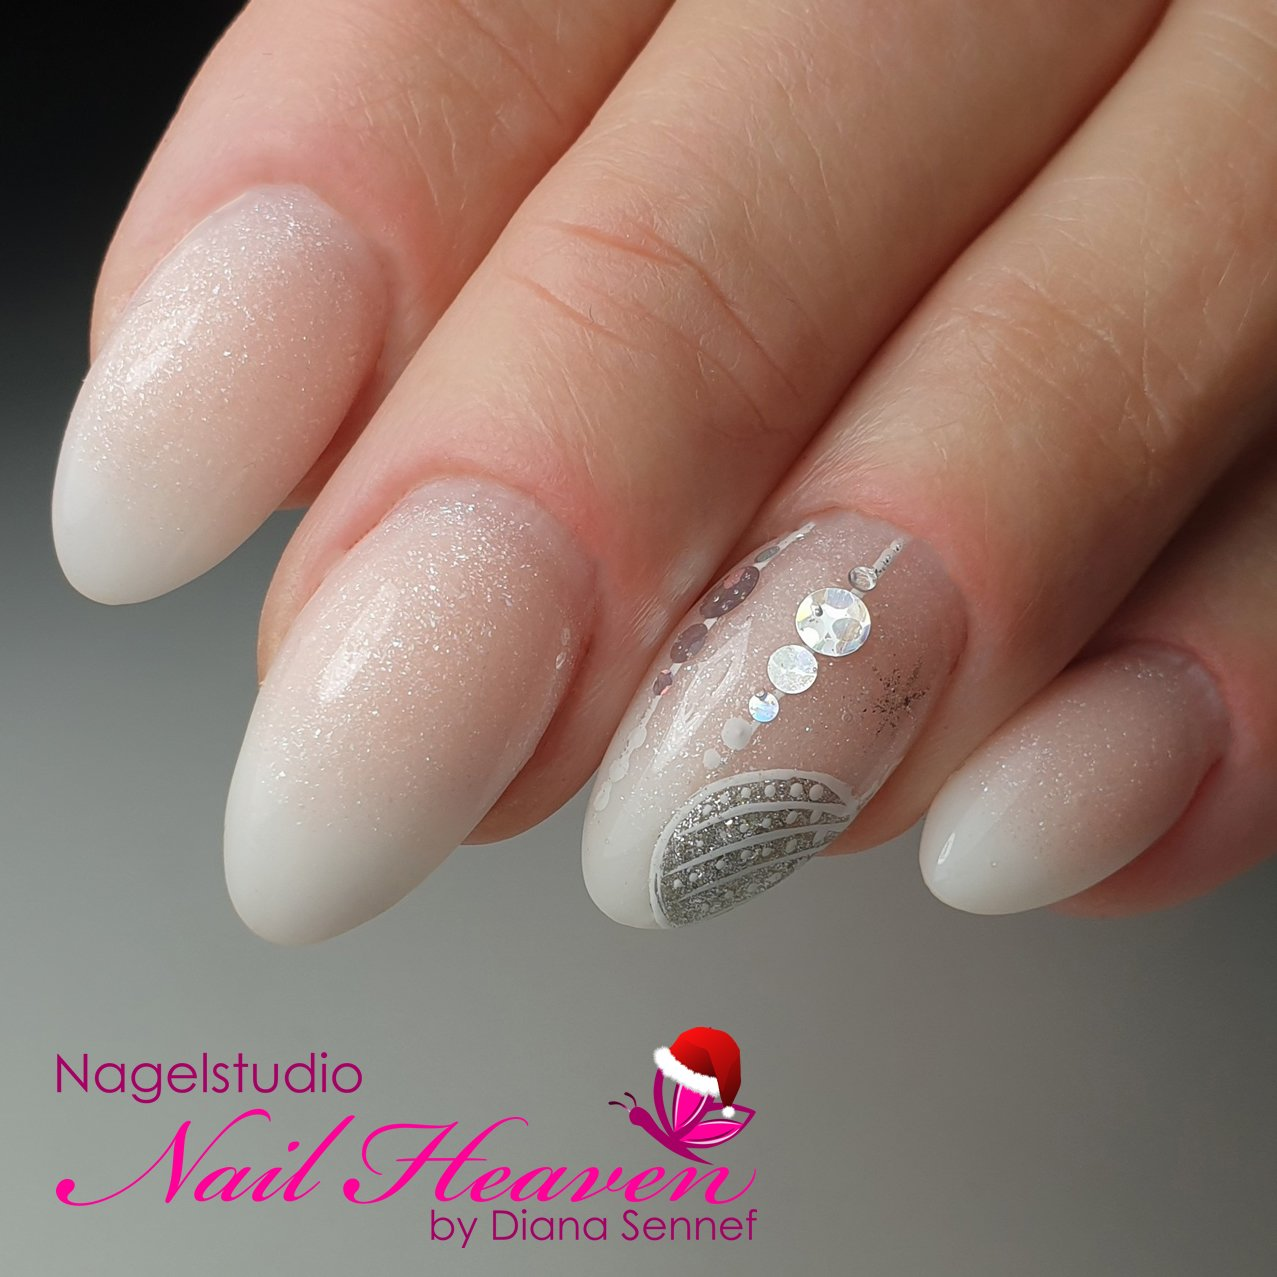 20191219_Monique_babyboom_revogel_nailart_134208~01.2-01-logo